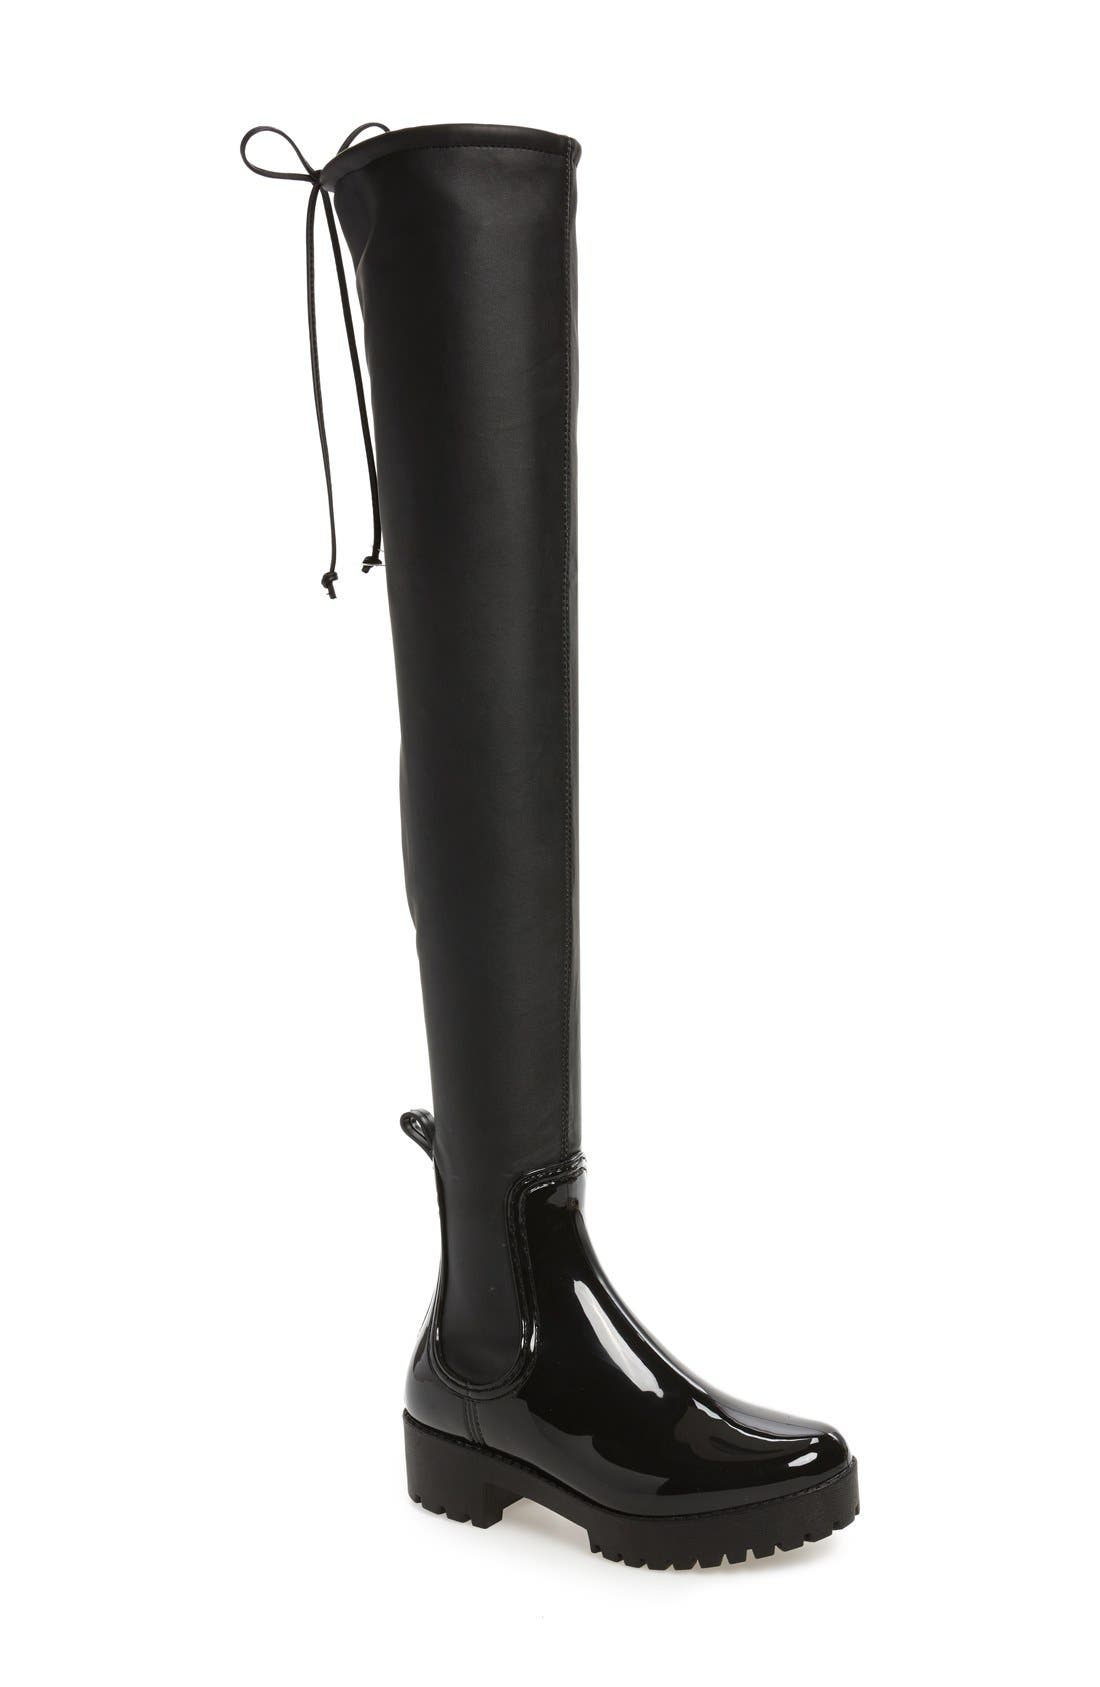 Alternate Image 1 Selected - Jeffrey Campbell Cloudy Over the Knee Rain Boot (Women)